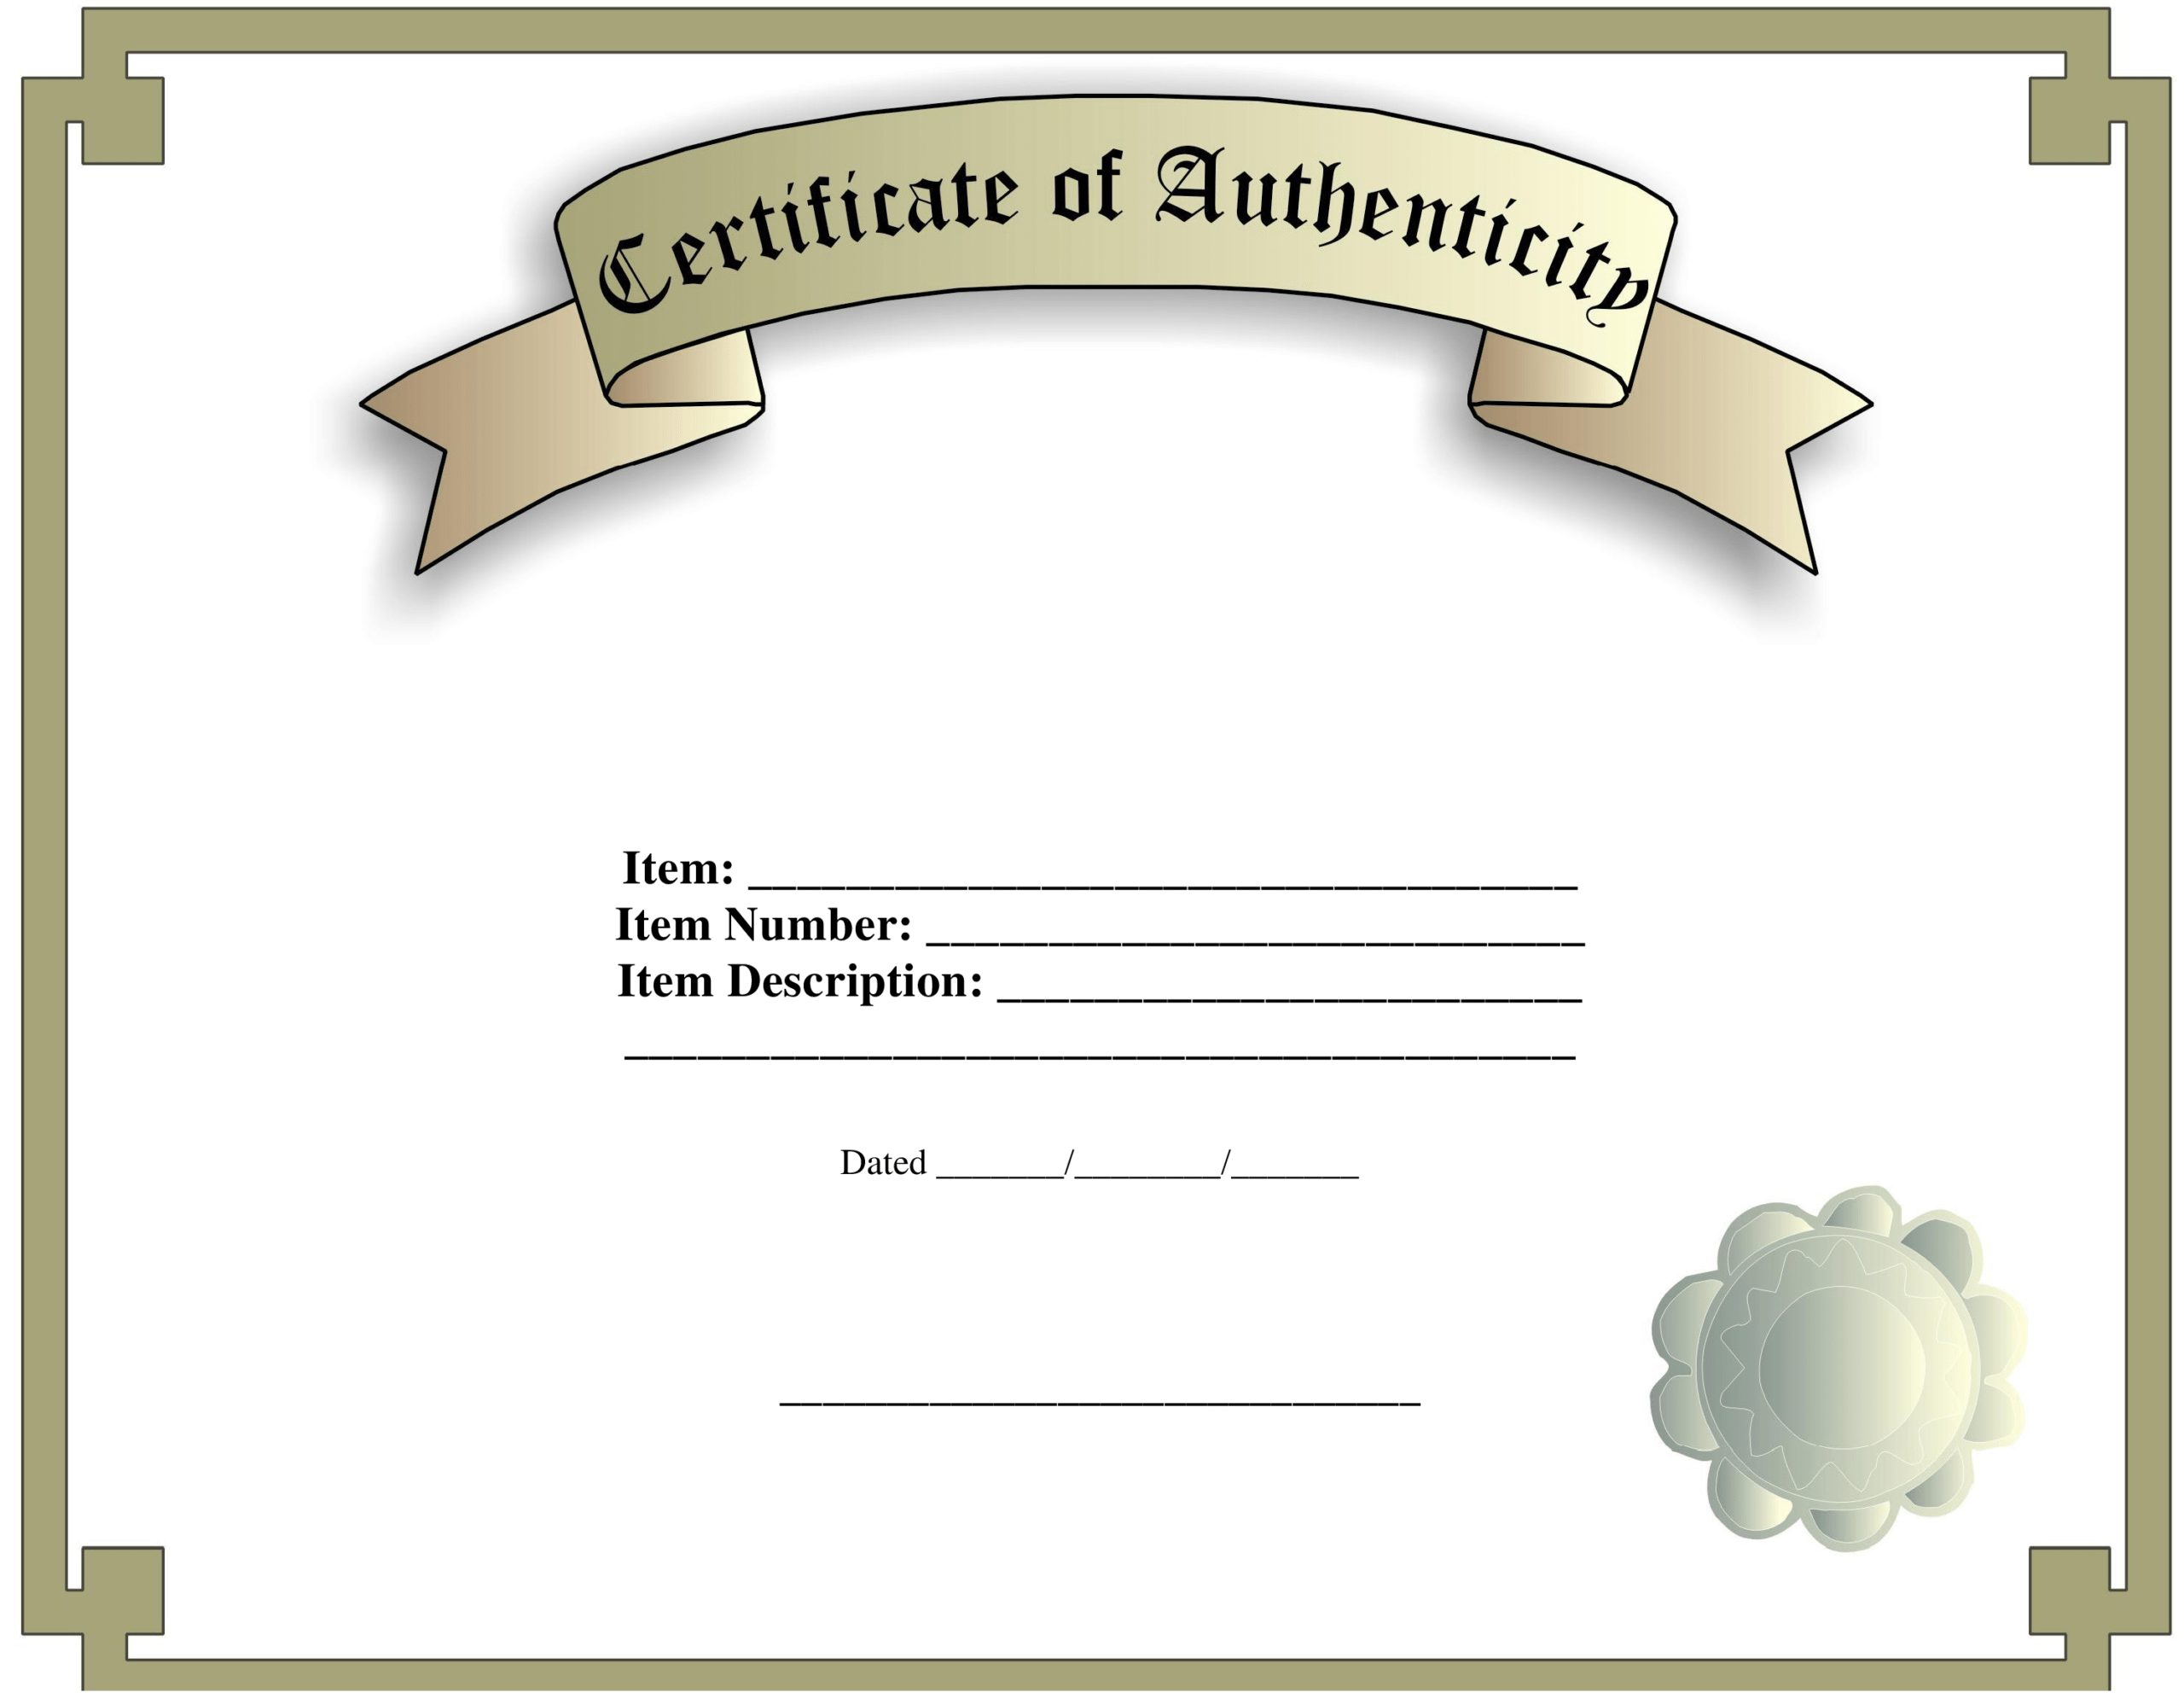 Certificate Of Authenticity Template | Templates At Within Certificate Of Authenticity Template